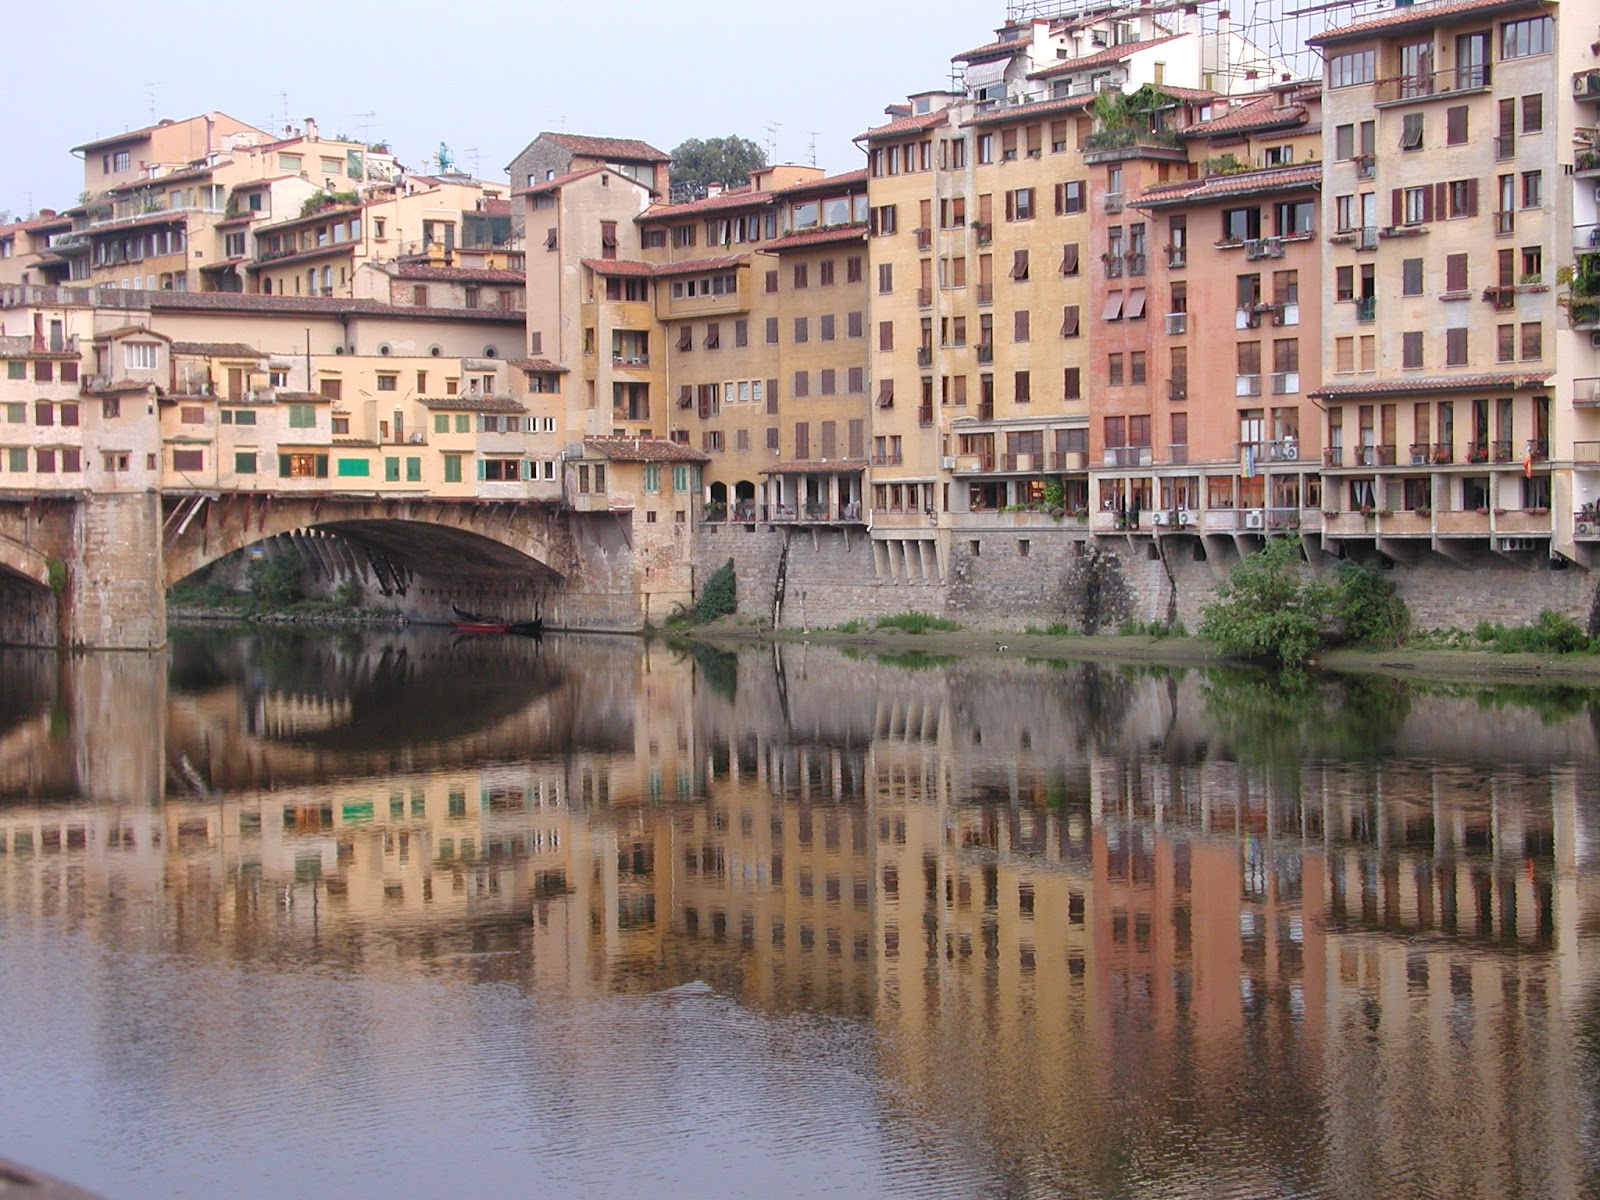 City Of Florence: Capital & Most Popular City Of Italy